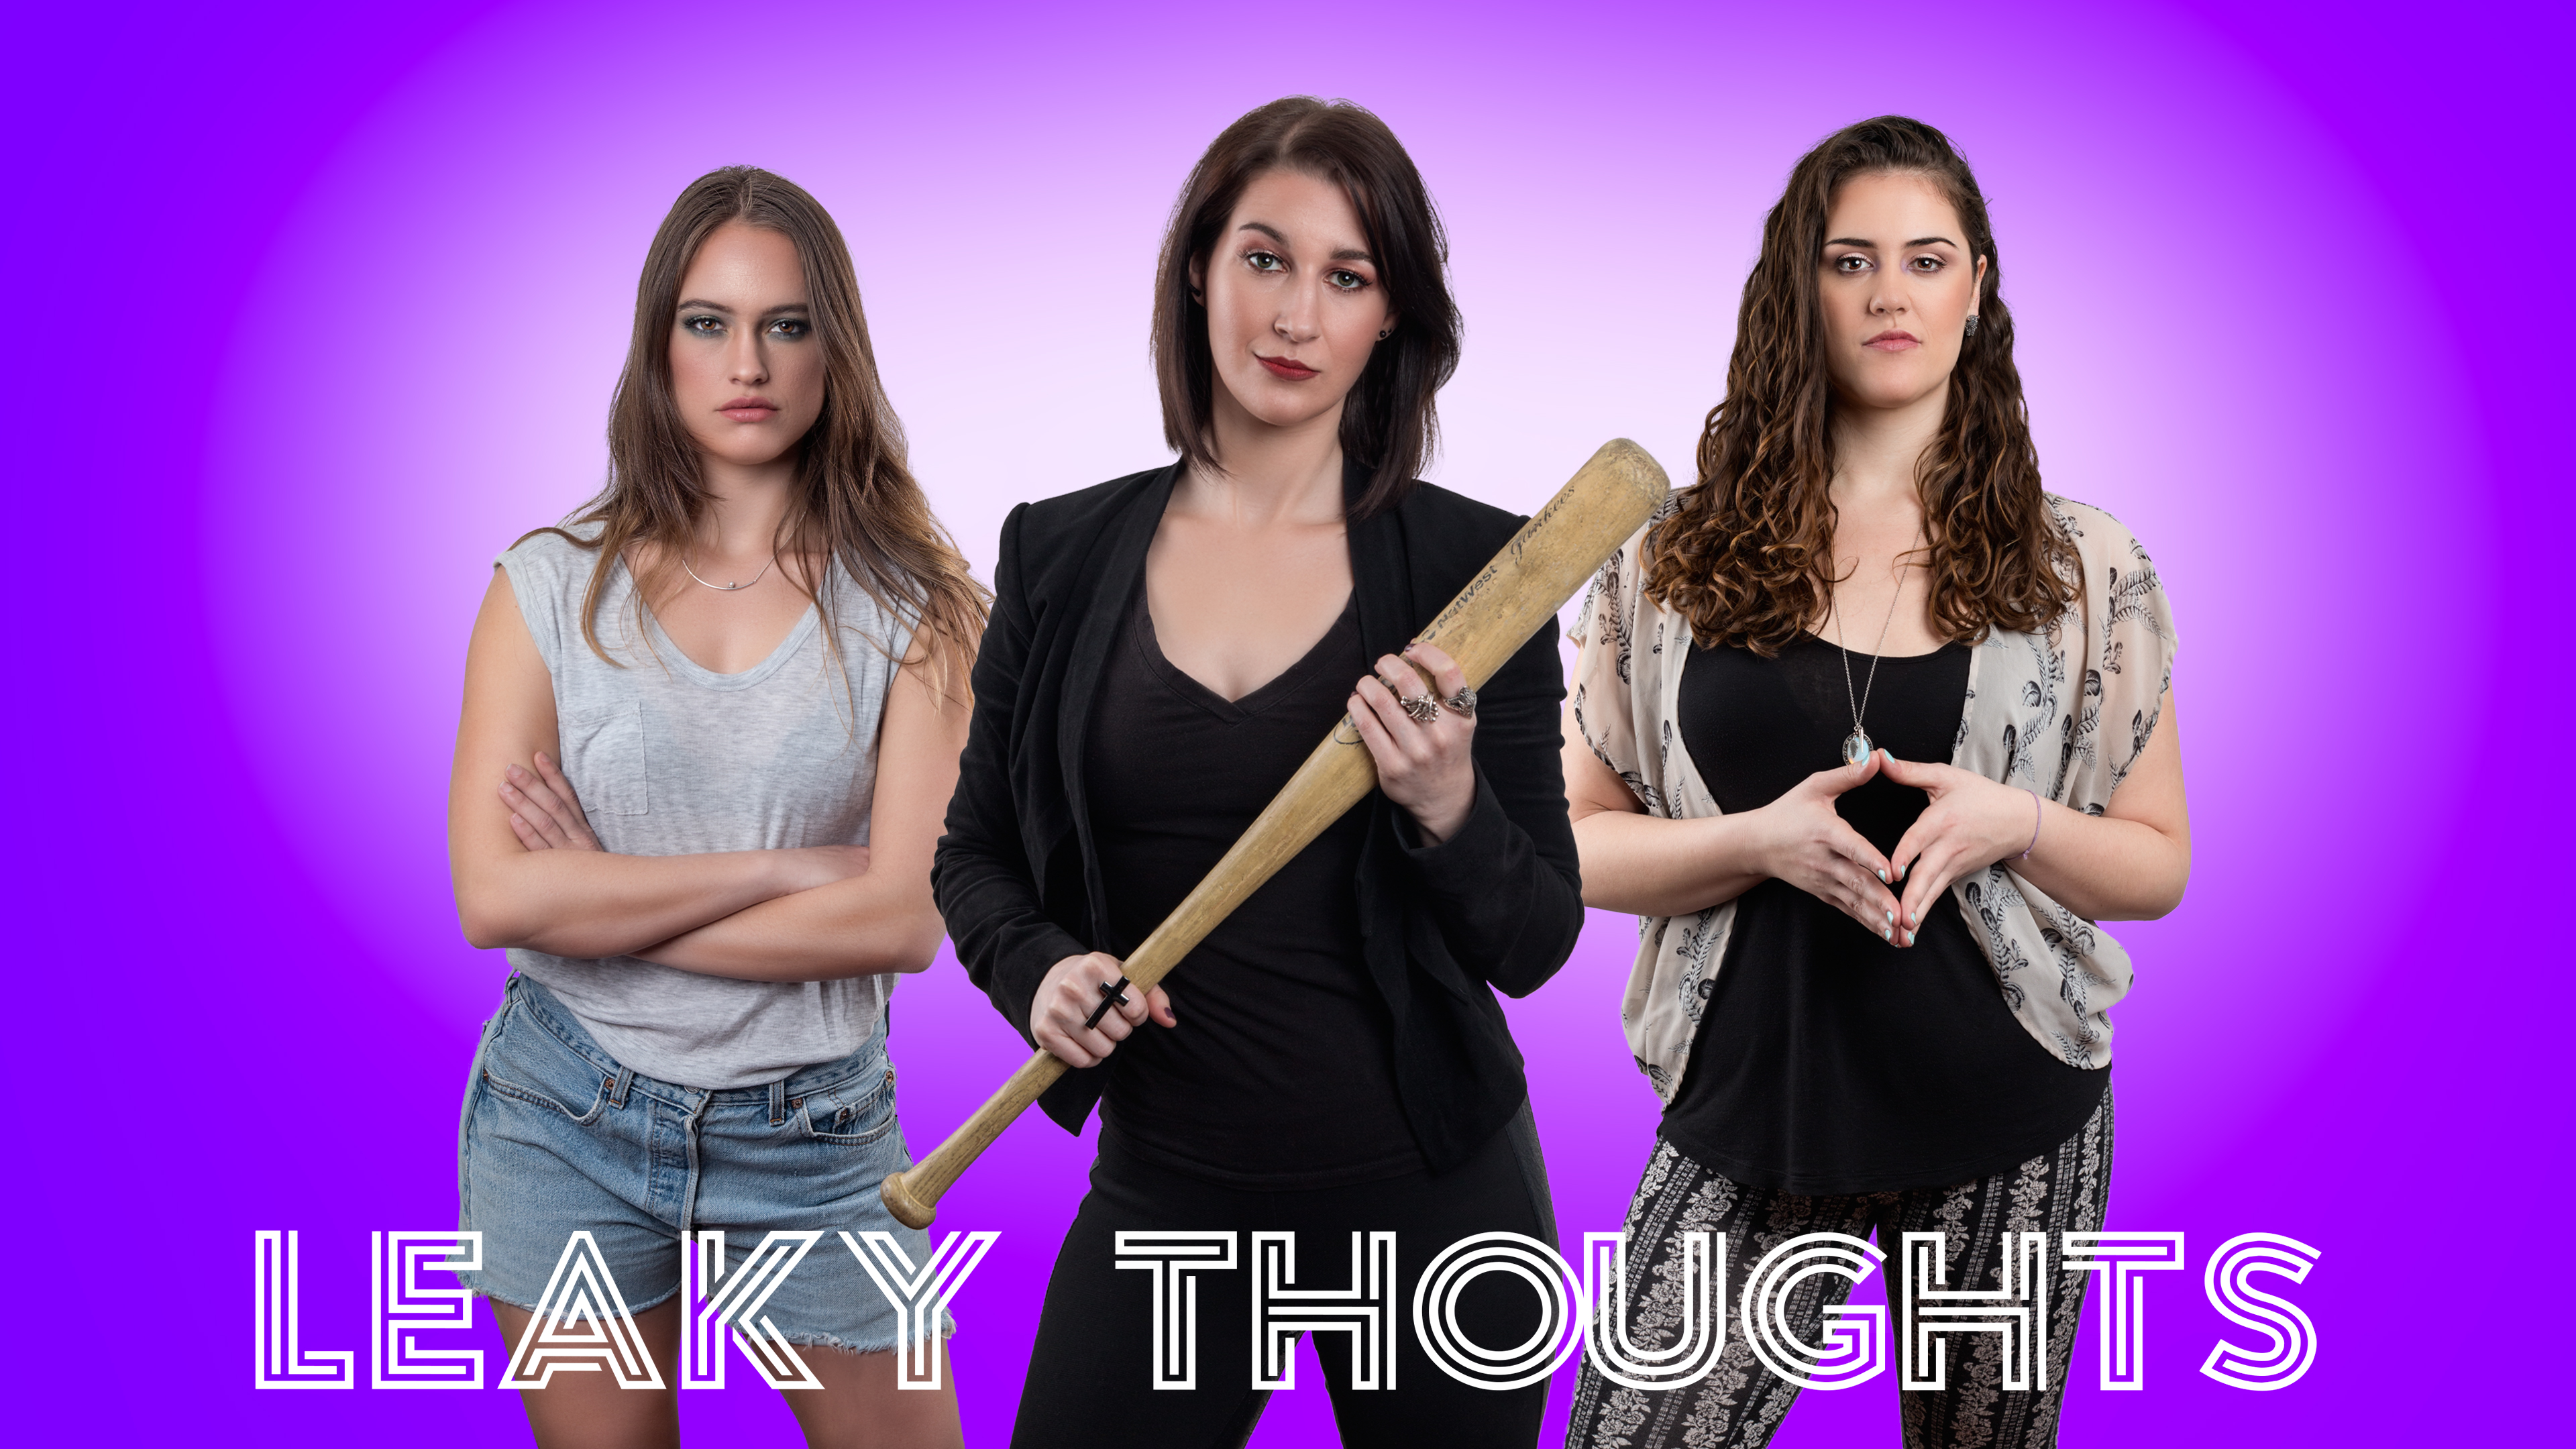 Leaky Thoughts Trio 3 final